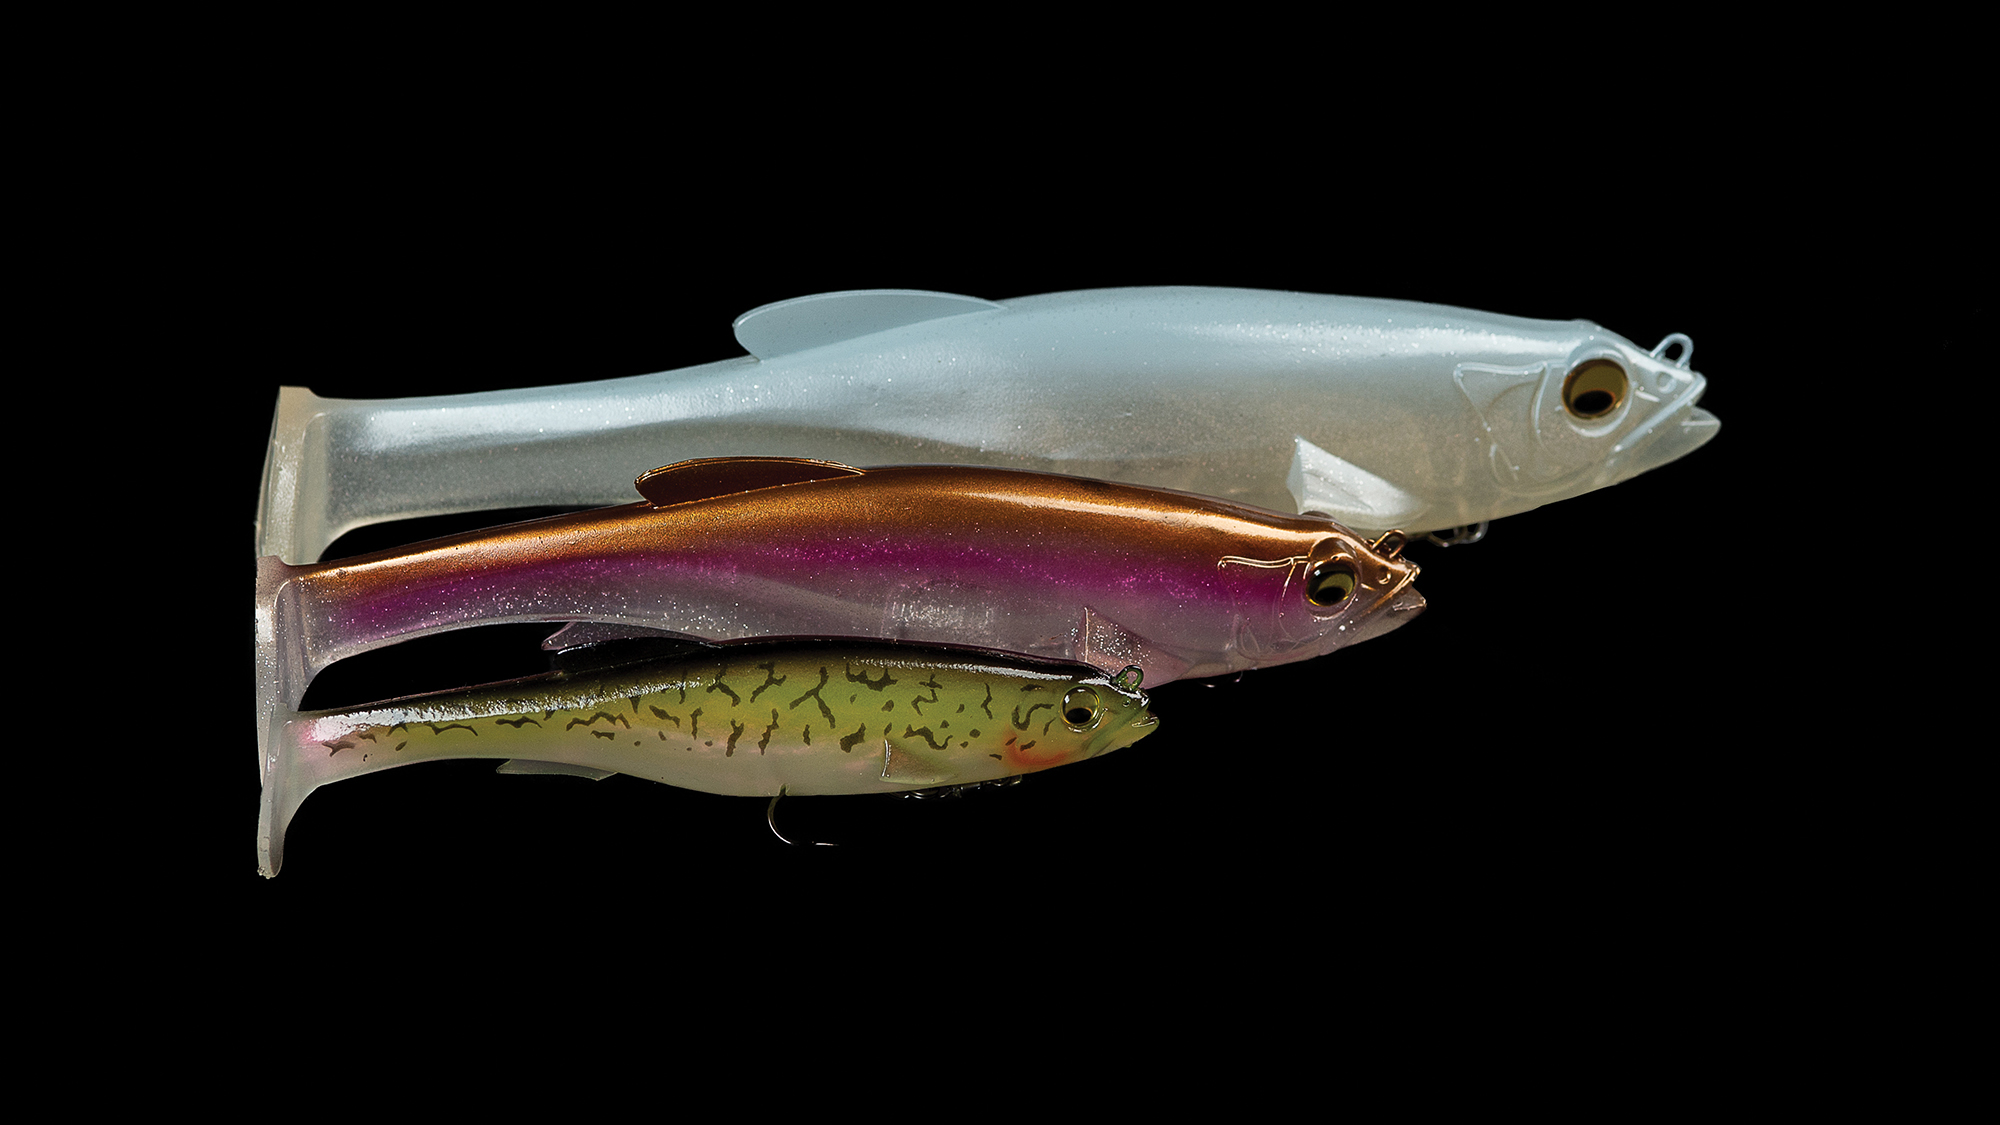 MEGABASS MAGDRAFT FREESTYLE 6 INCH SWIMBAIT SILVER SHAD